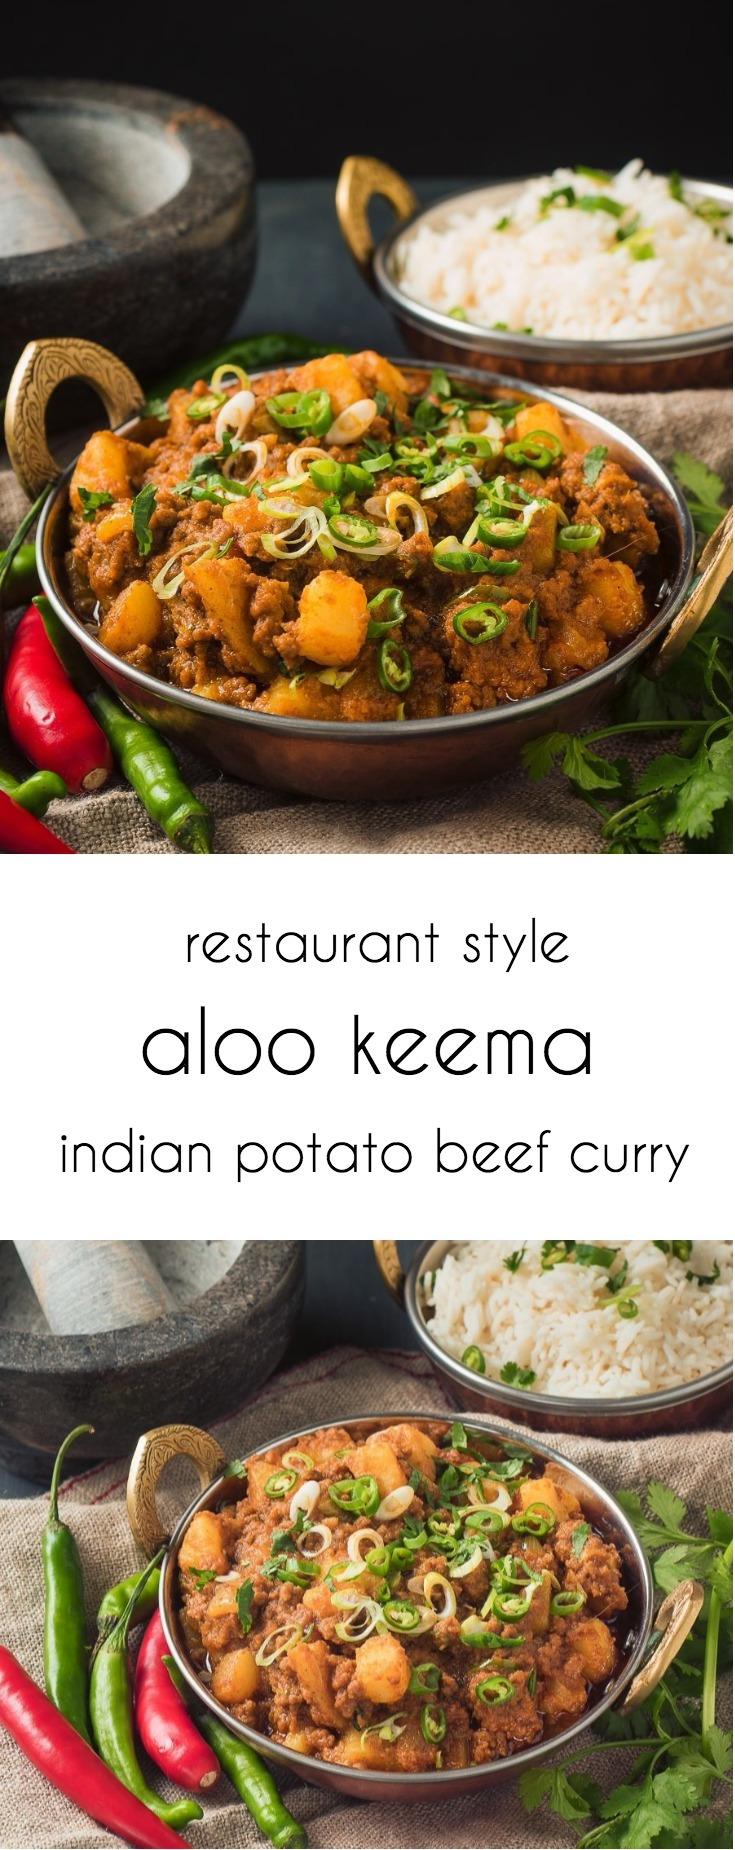 Restaurant style aloo keema makes a great alternative to the usual suspects.